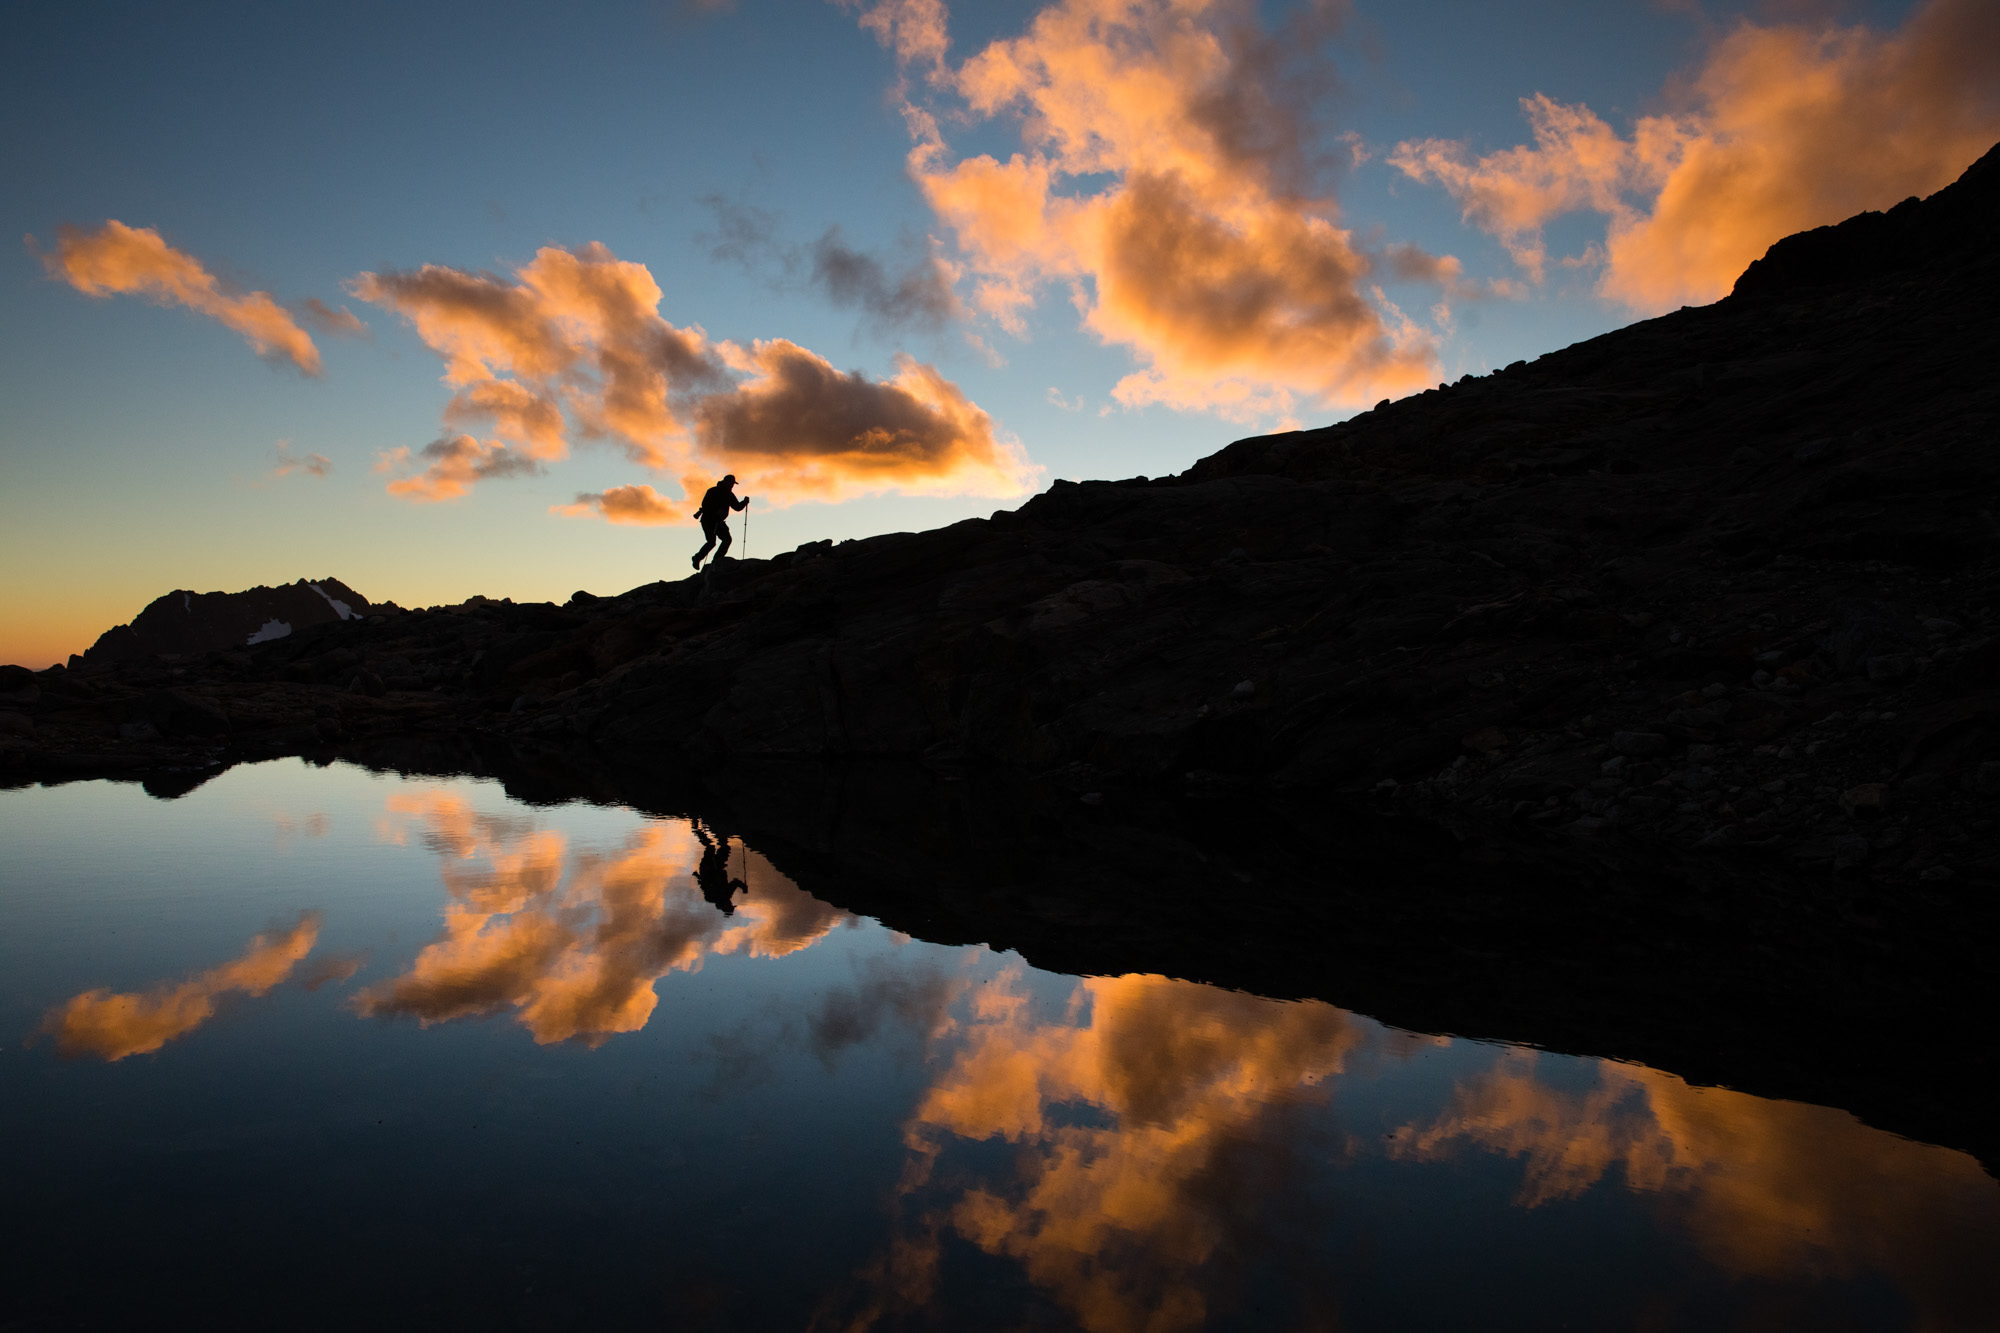 sunrise-hike-fall-backpack-active-lifestyle-photographer